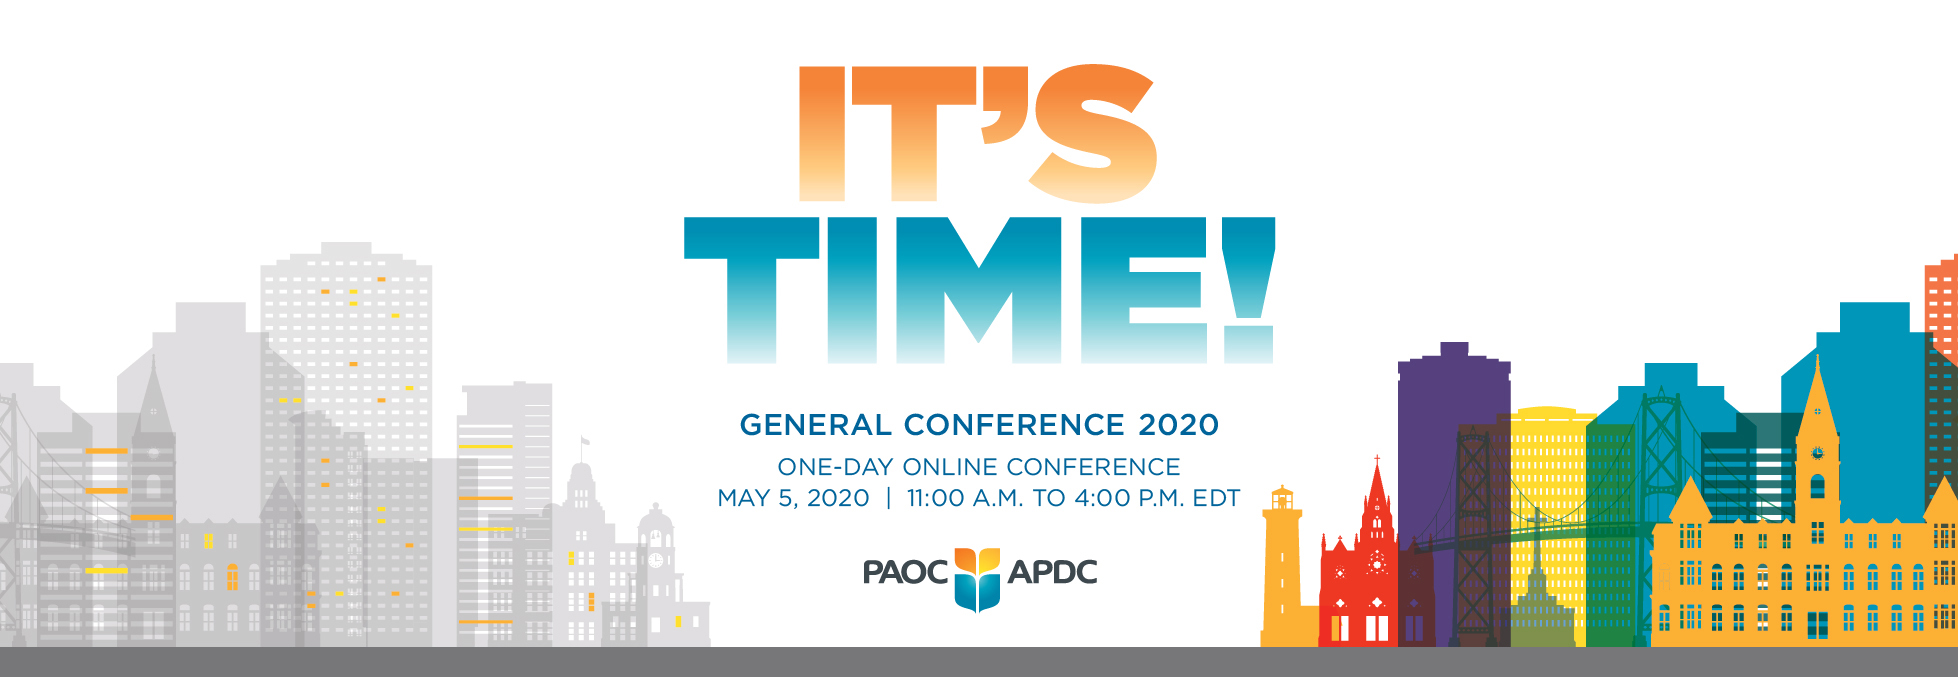 itstime